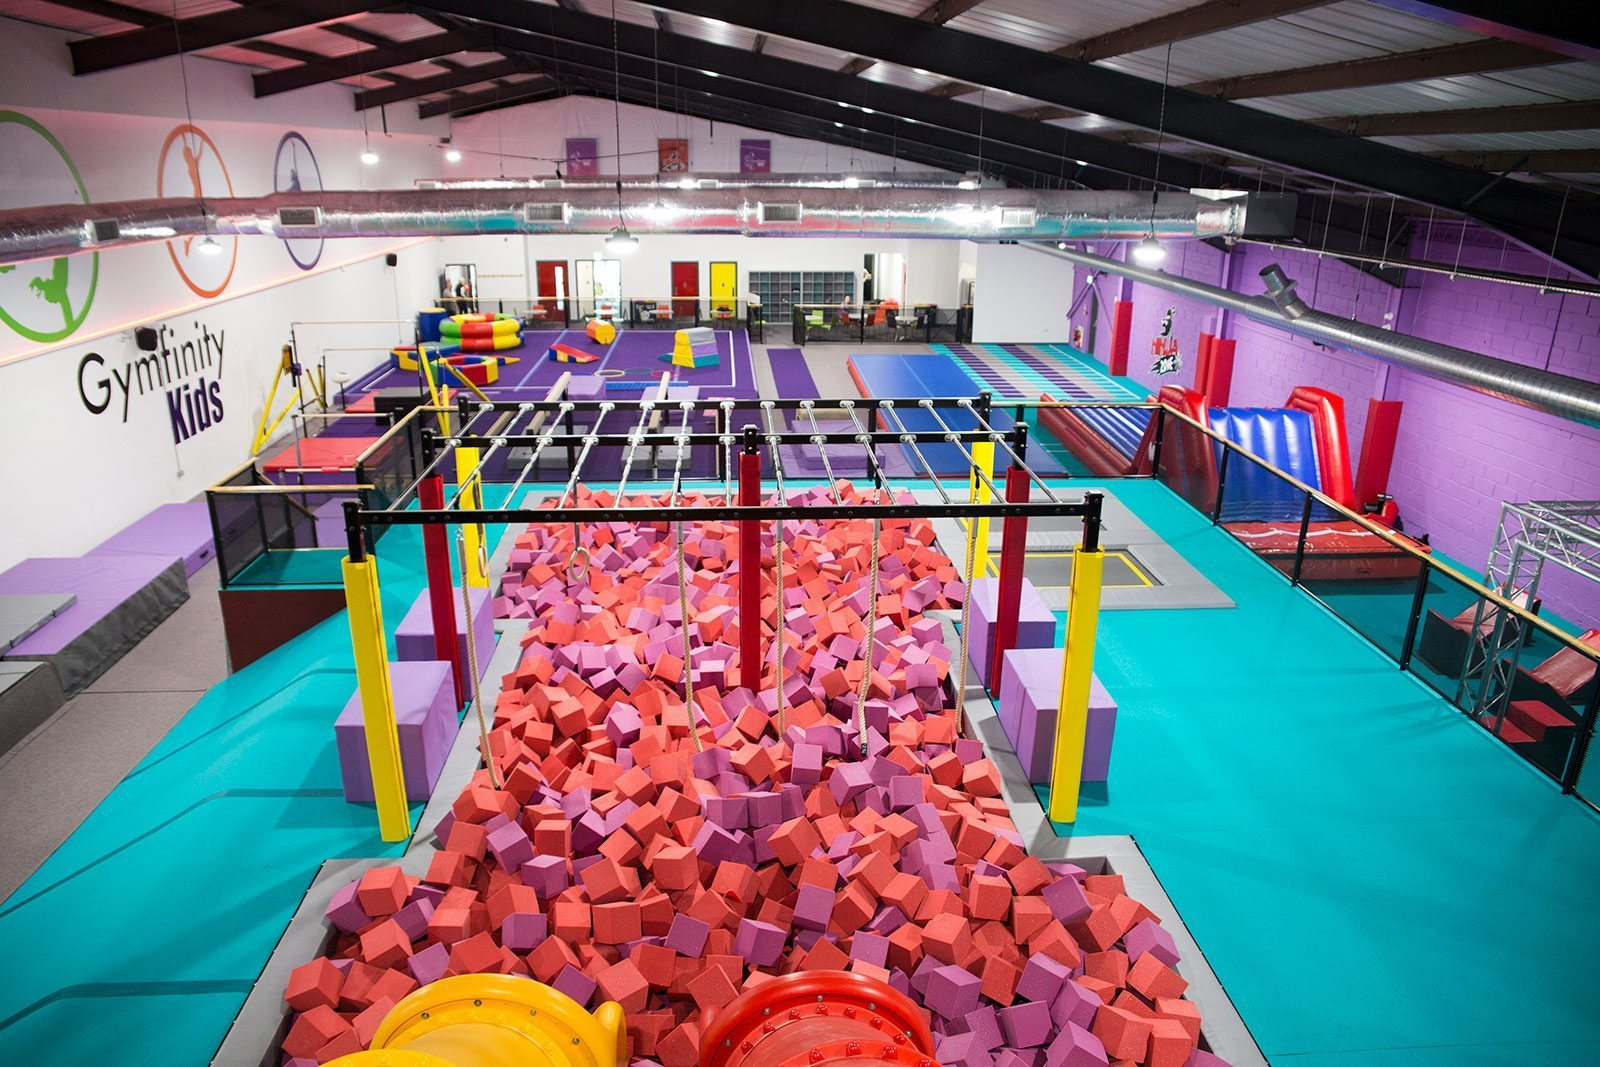 Empty Bracknell snooker hall set to be converted to gym activity centre for kids